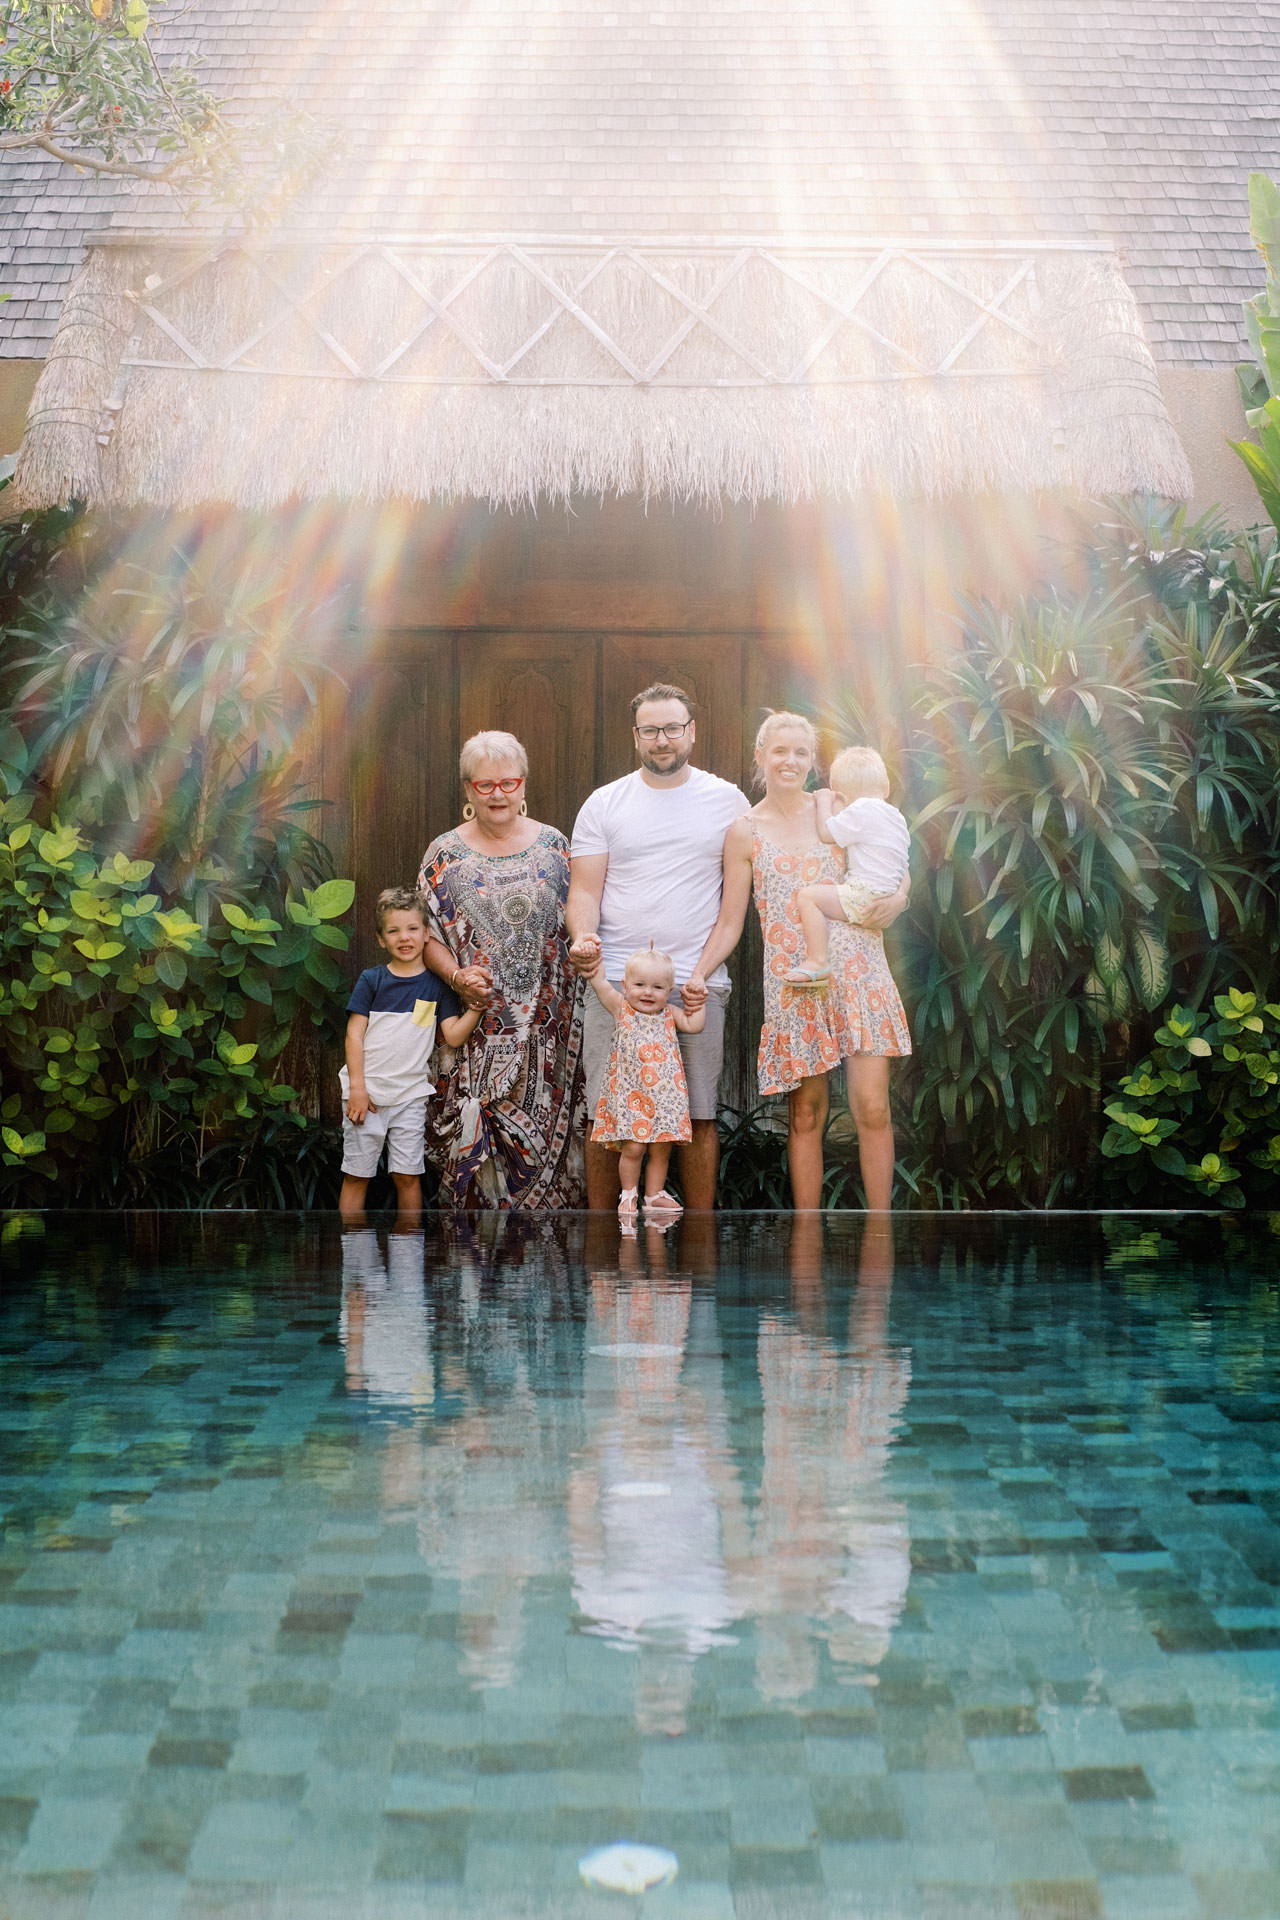 Bali Family Photographer - Fun Family Vacation in Bali 12